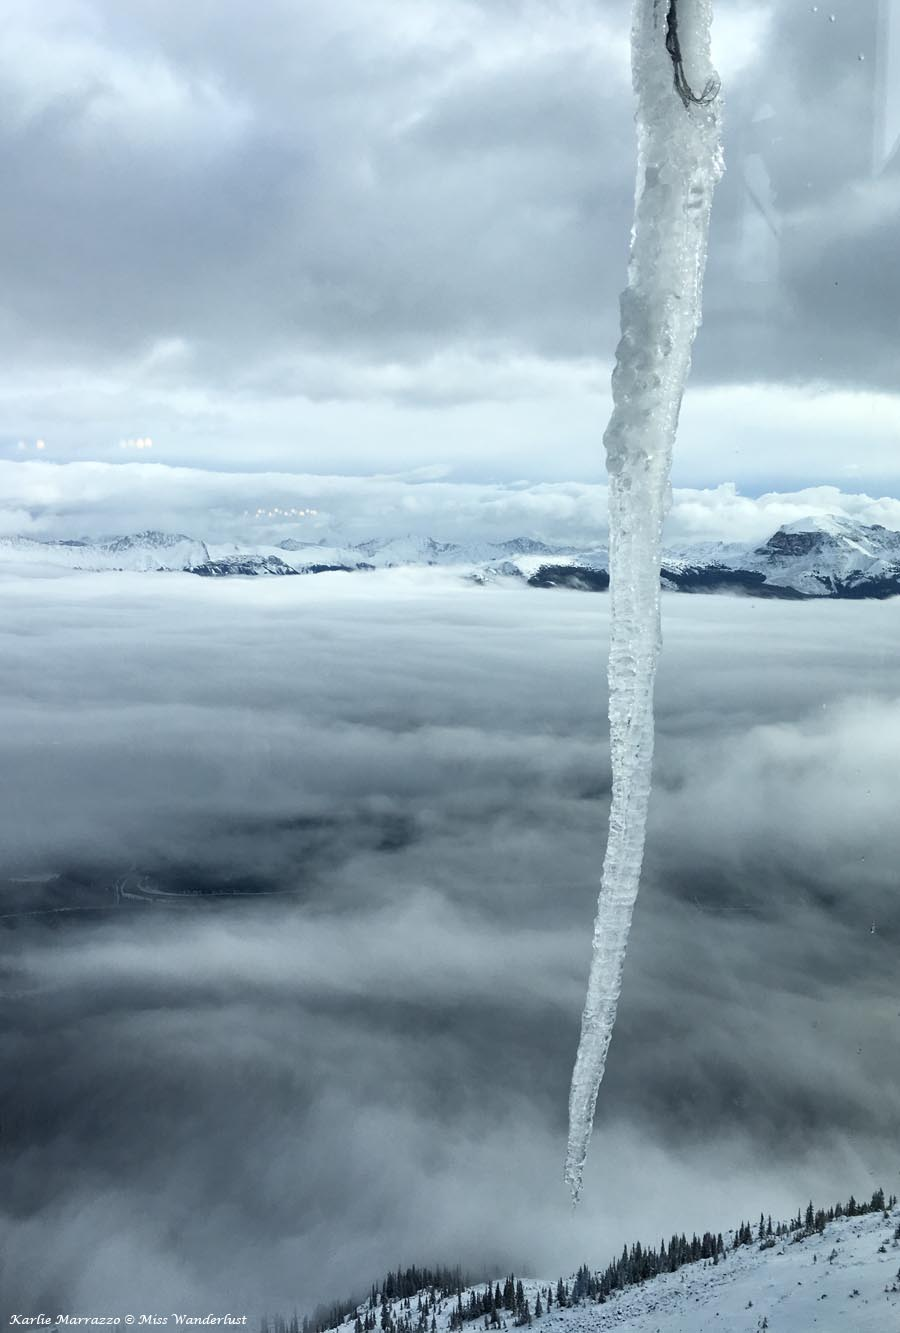 A large icicle hangs in the foreground with the Rocky Mountains shrouded in clouds in the background.